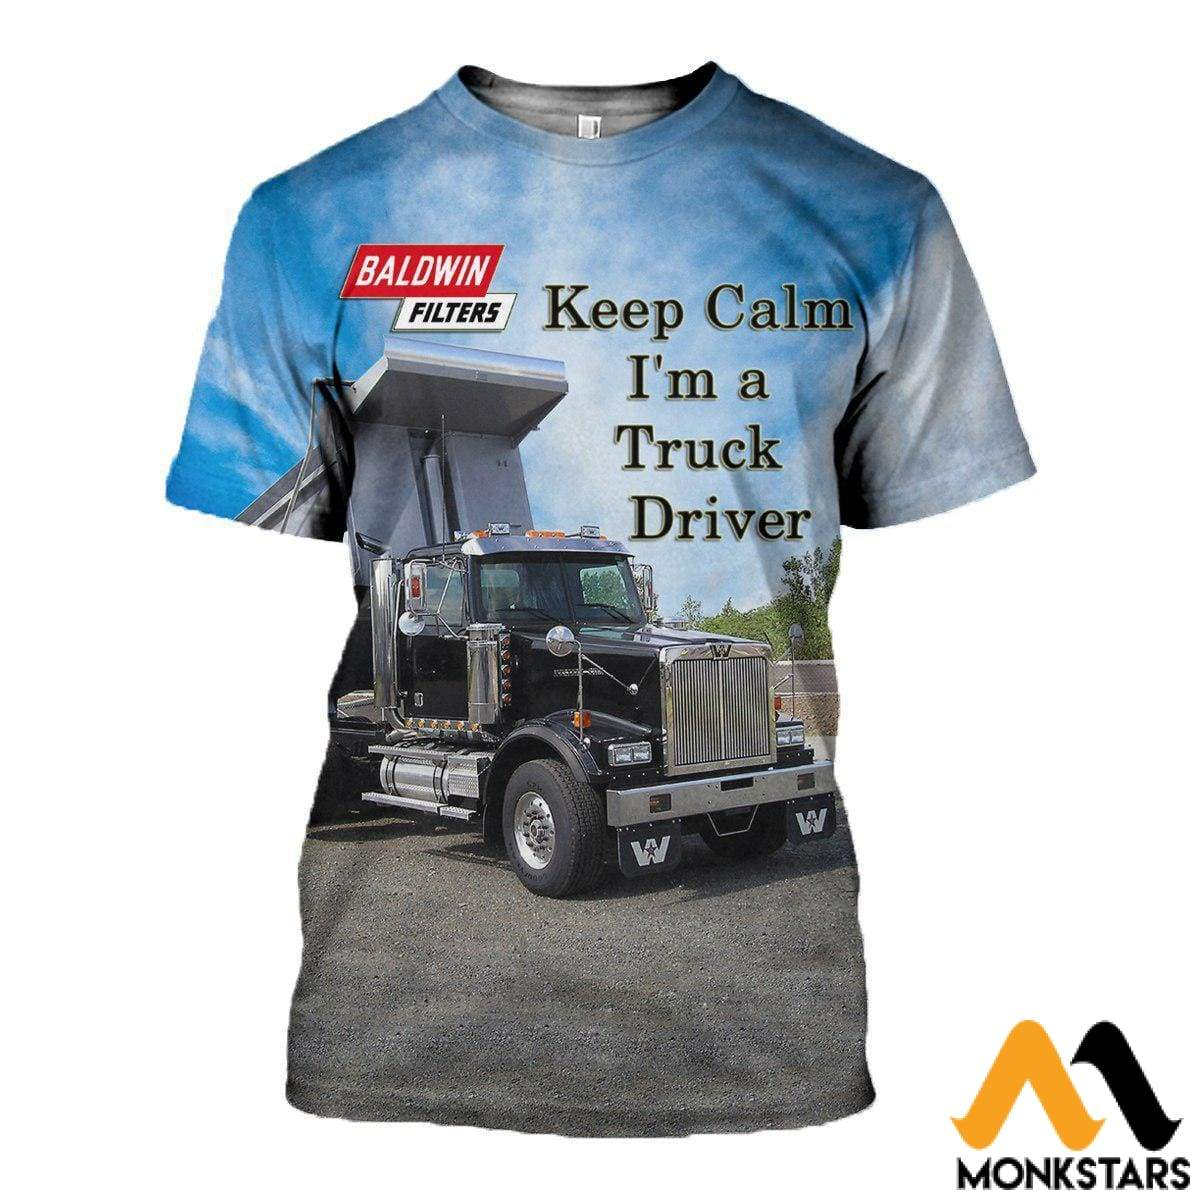 3D All Over Printed Custom Truck Shirts And Shorts T-Shirt / Xs Clothes